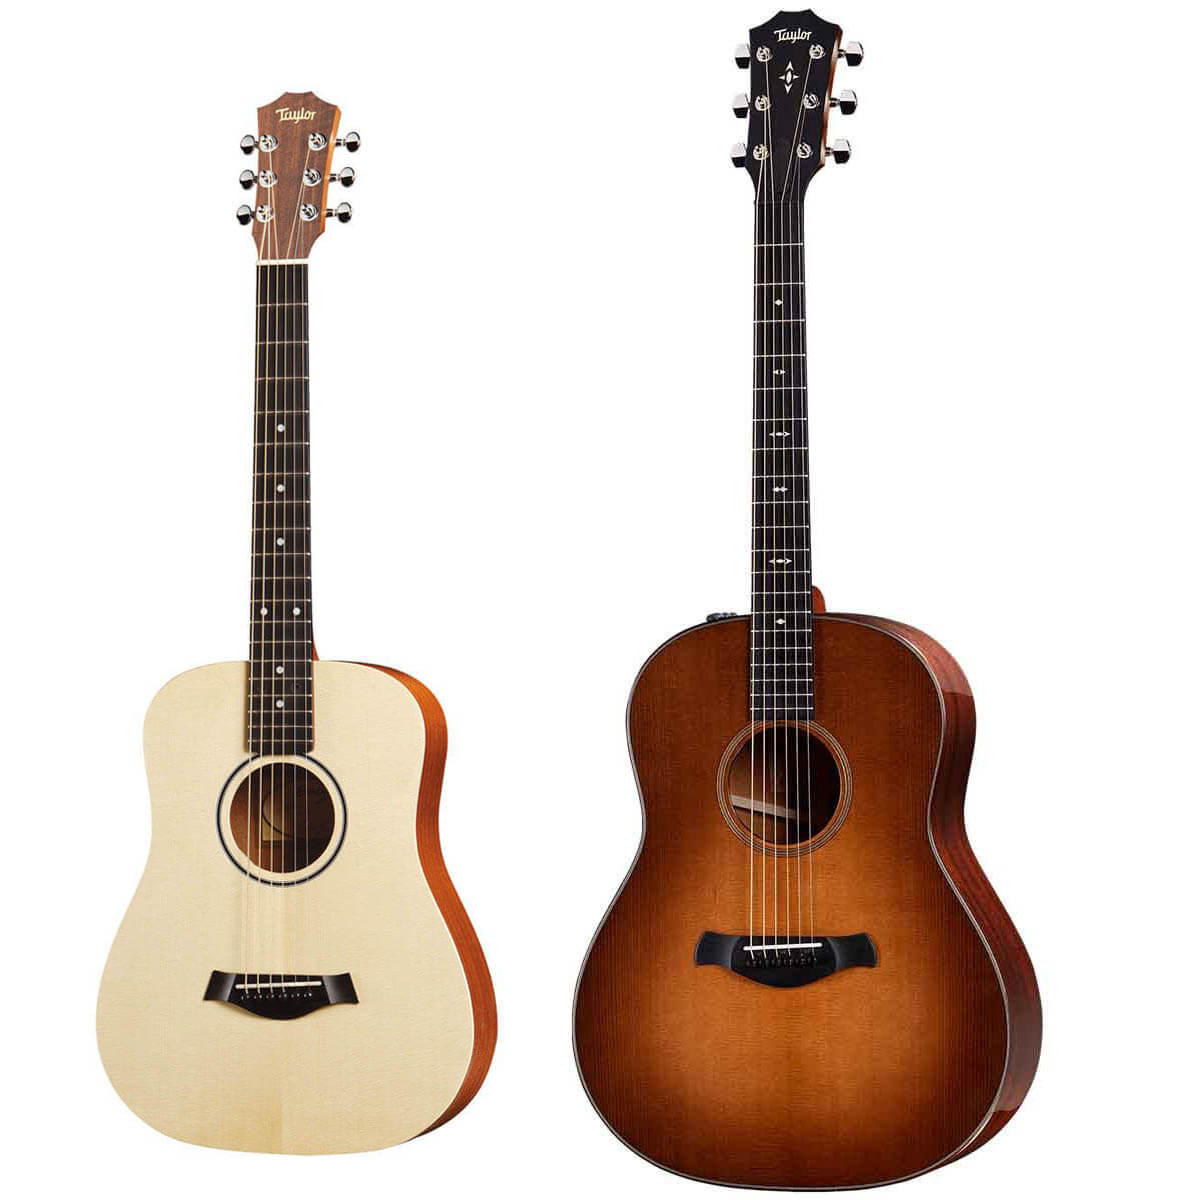 Taylor Builders Edition 517e WHB western-guitar whb + BT1 Baby Taylor